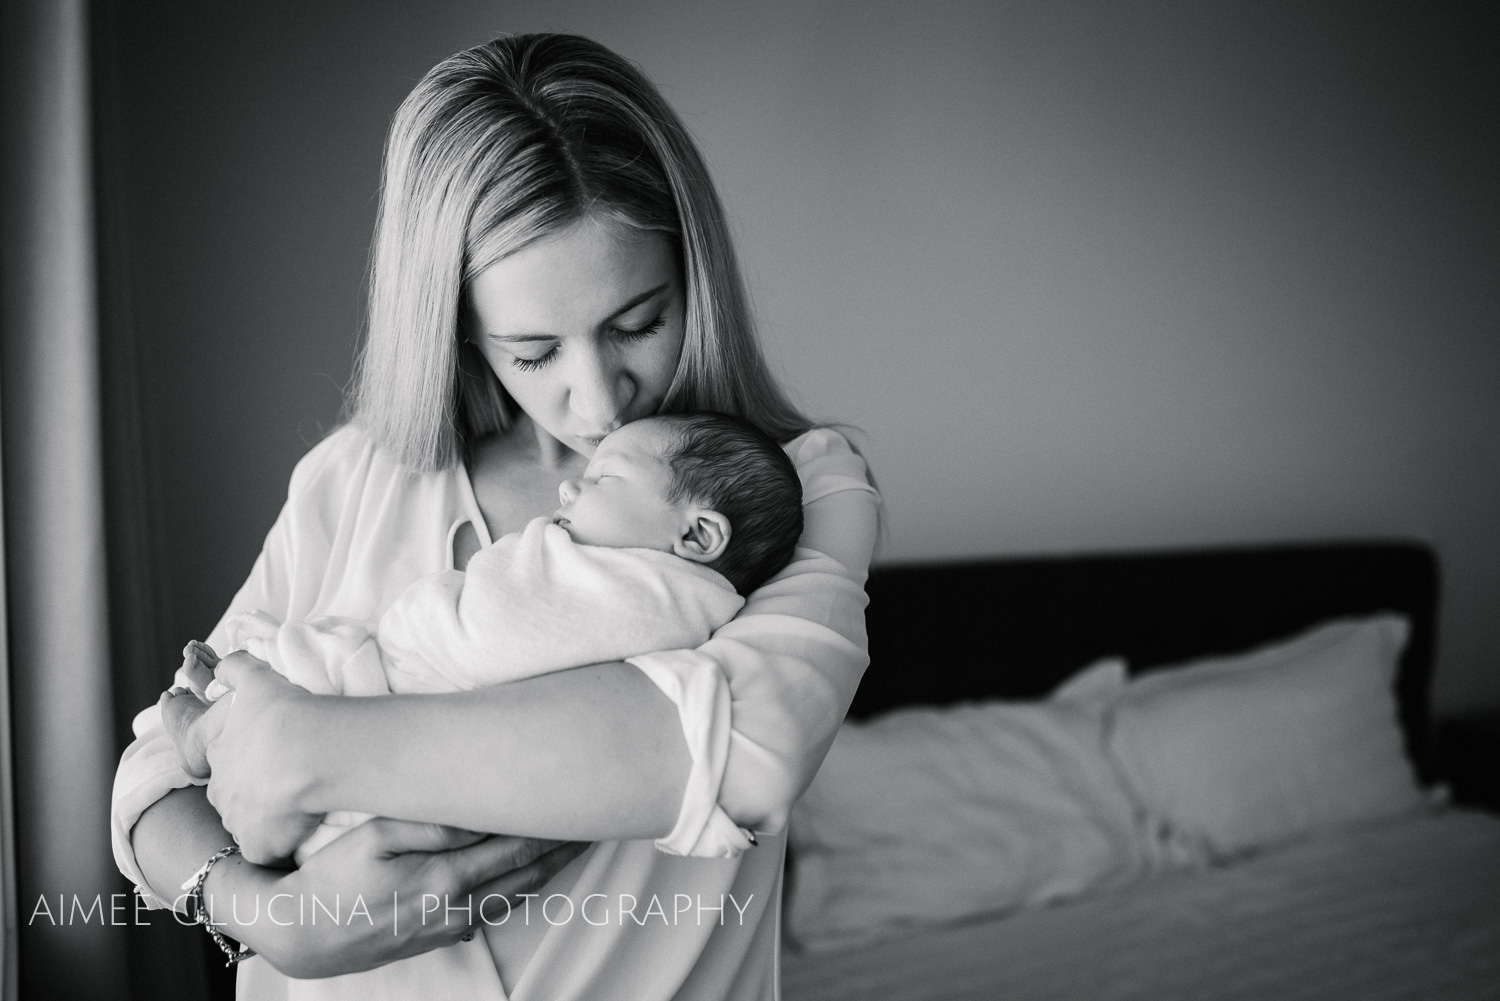 Newborn & Family Photography Session by Aimee Glucina Photography-15.jpg